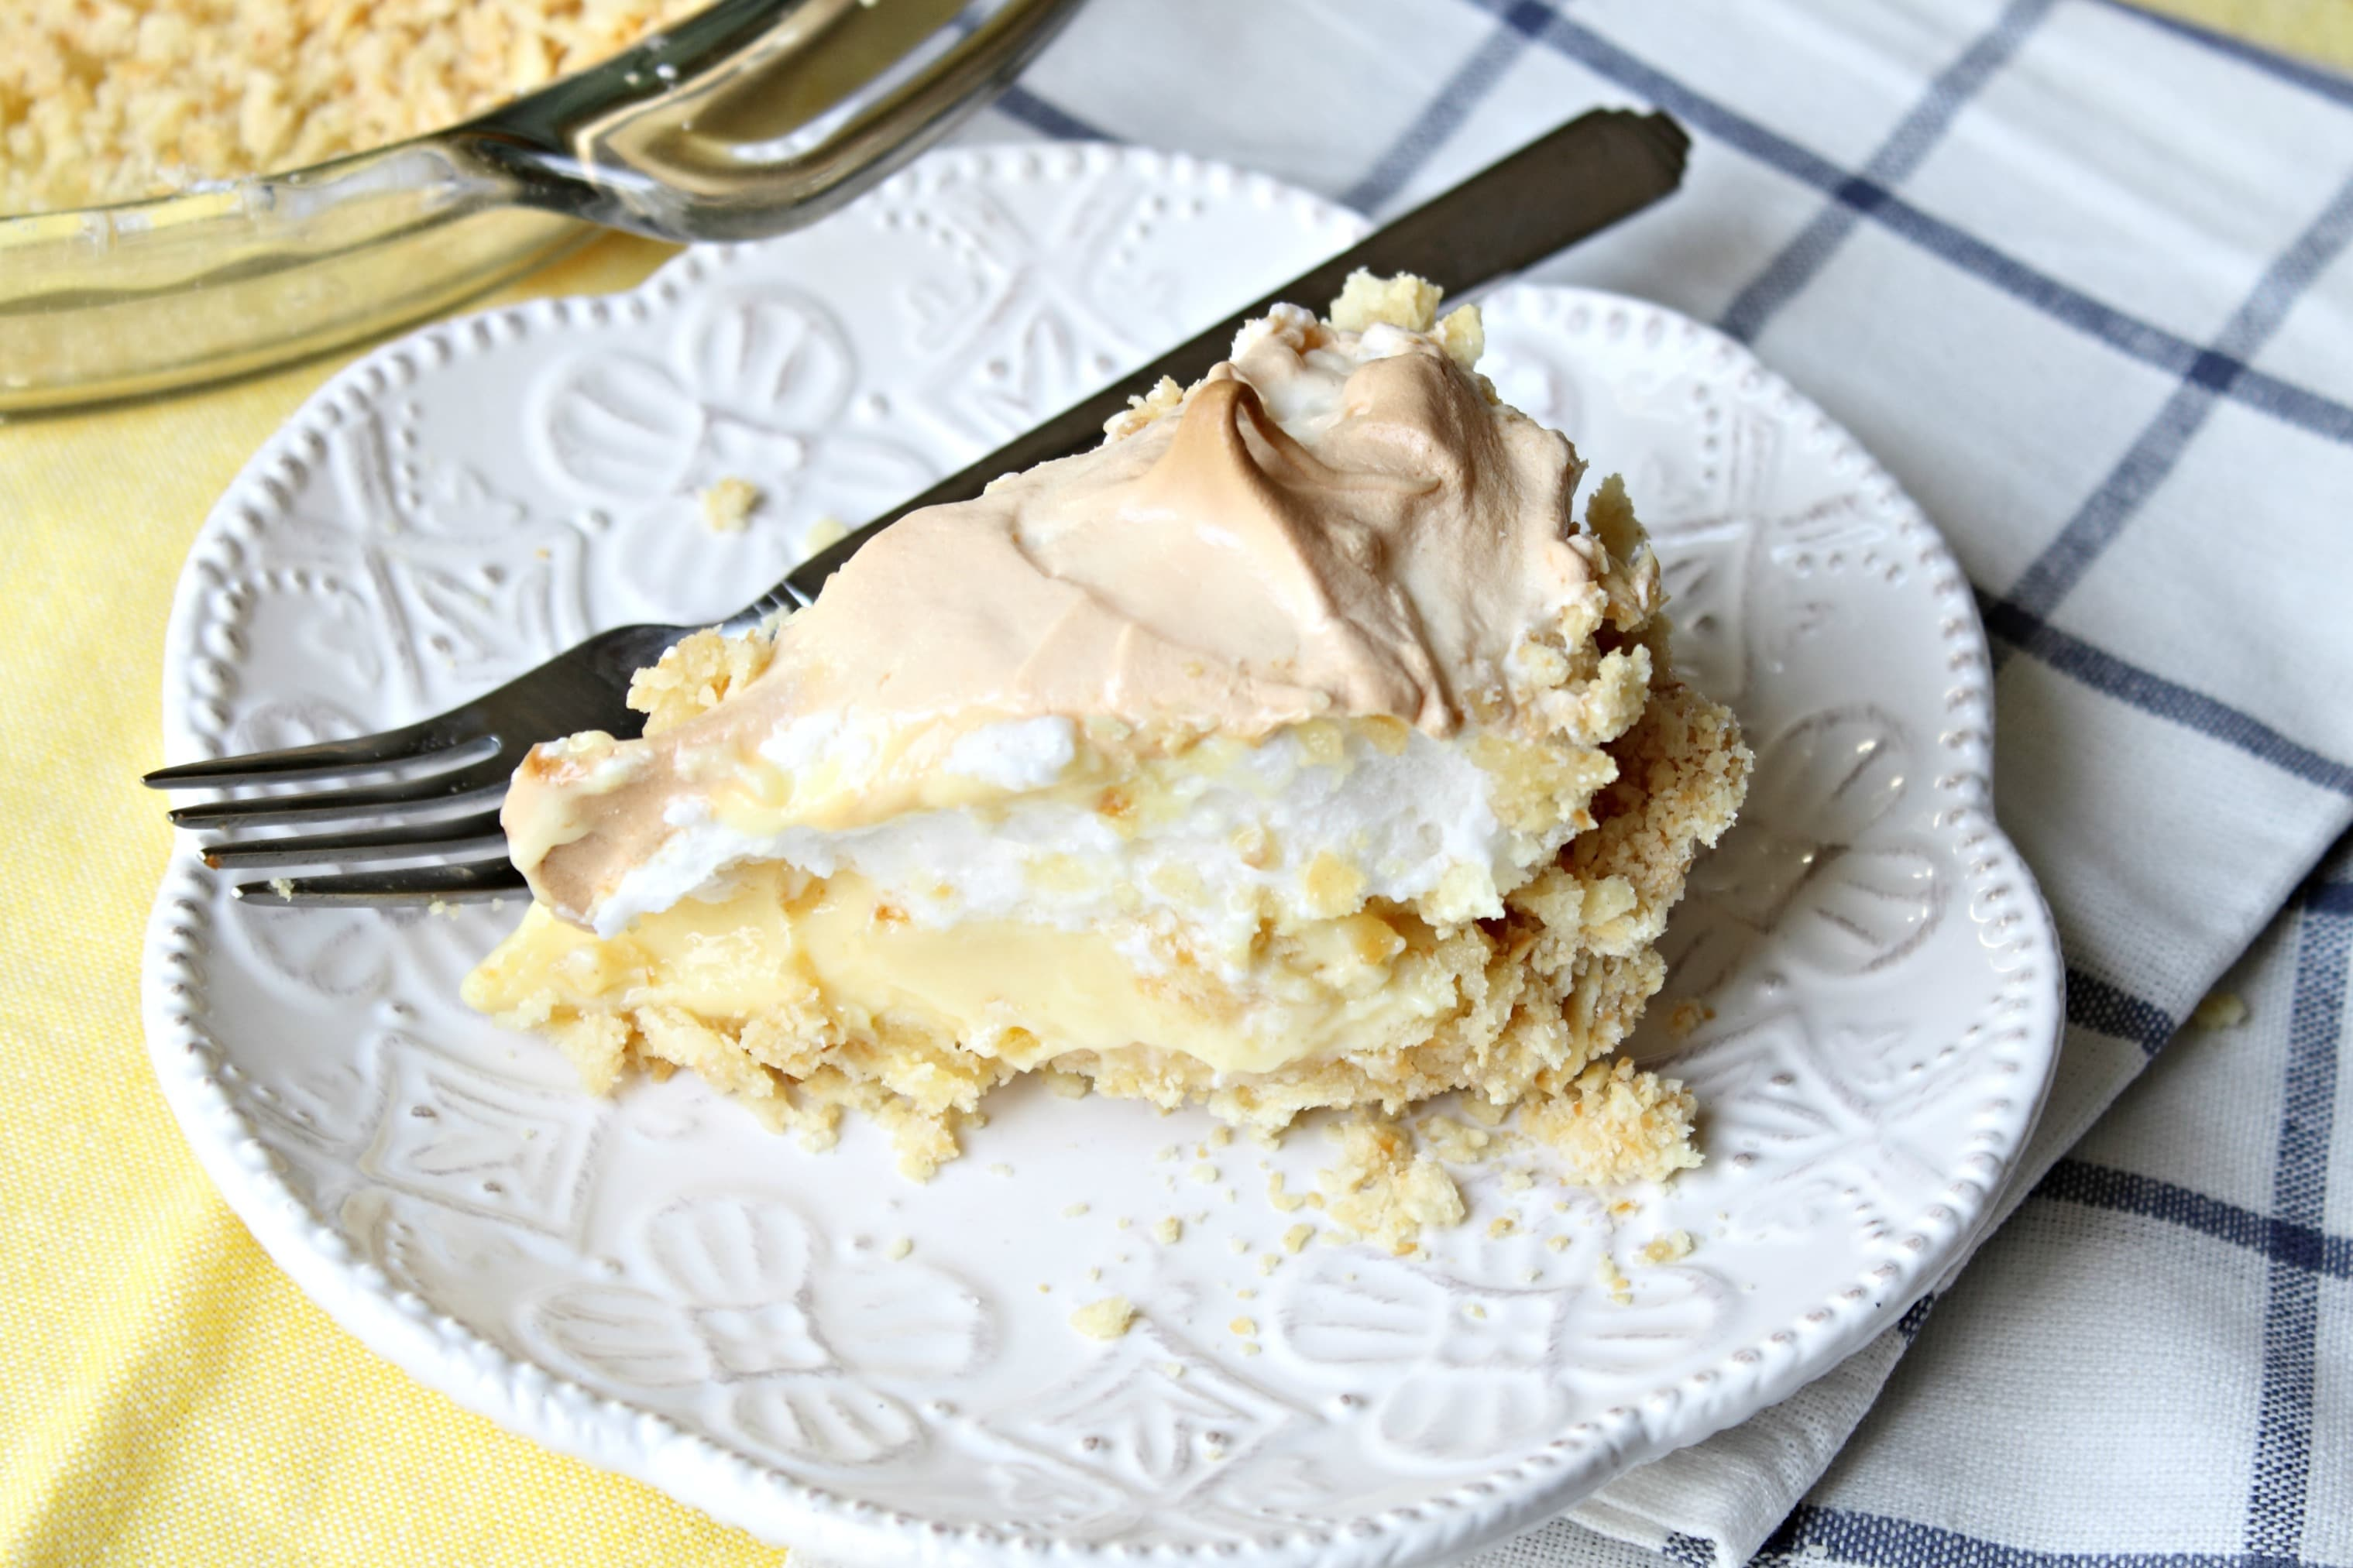 Atlantic Beach Pie - A summertime pie that tastes like lemon meringue, but made with a saltine cracker crust